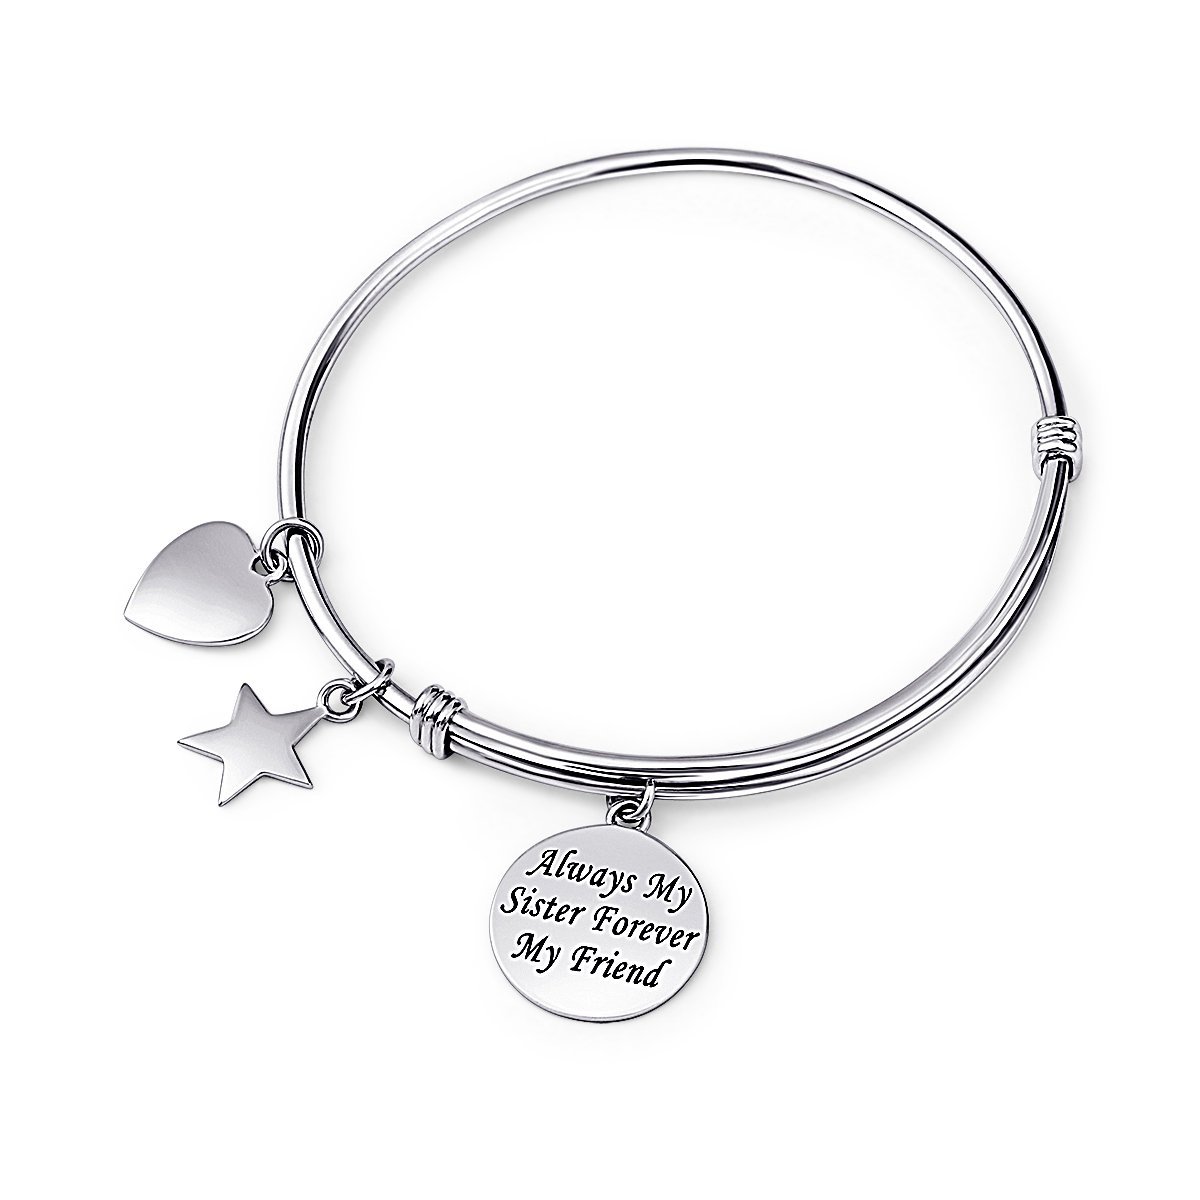 Sister Gift 925 Sterling Silver Always my Sister Forever my Friend Adjustable Bangle Bracelet, 7.5''